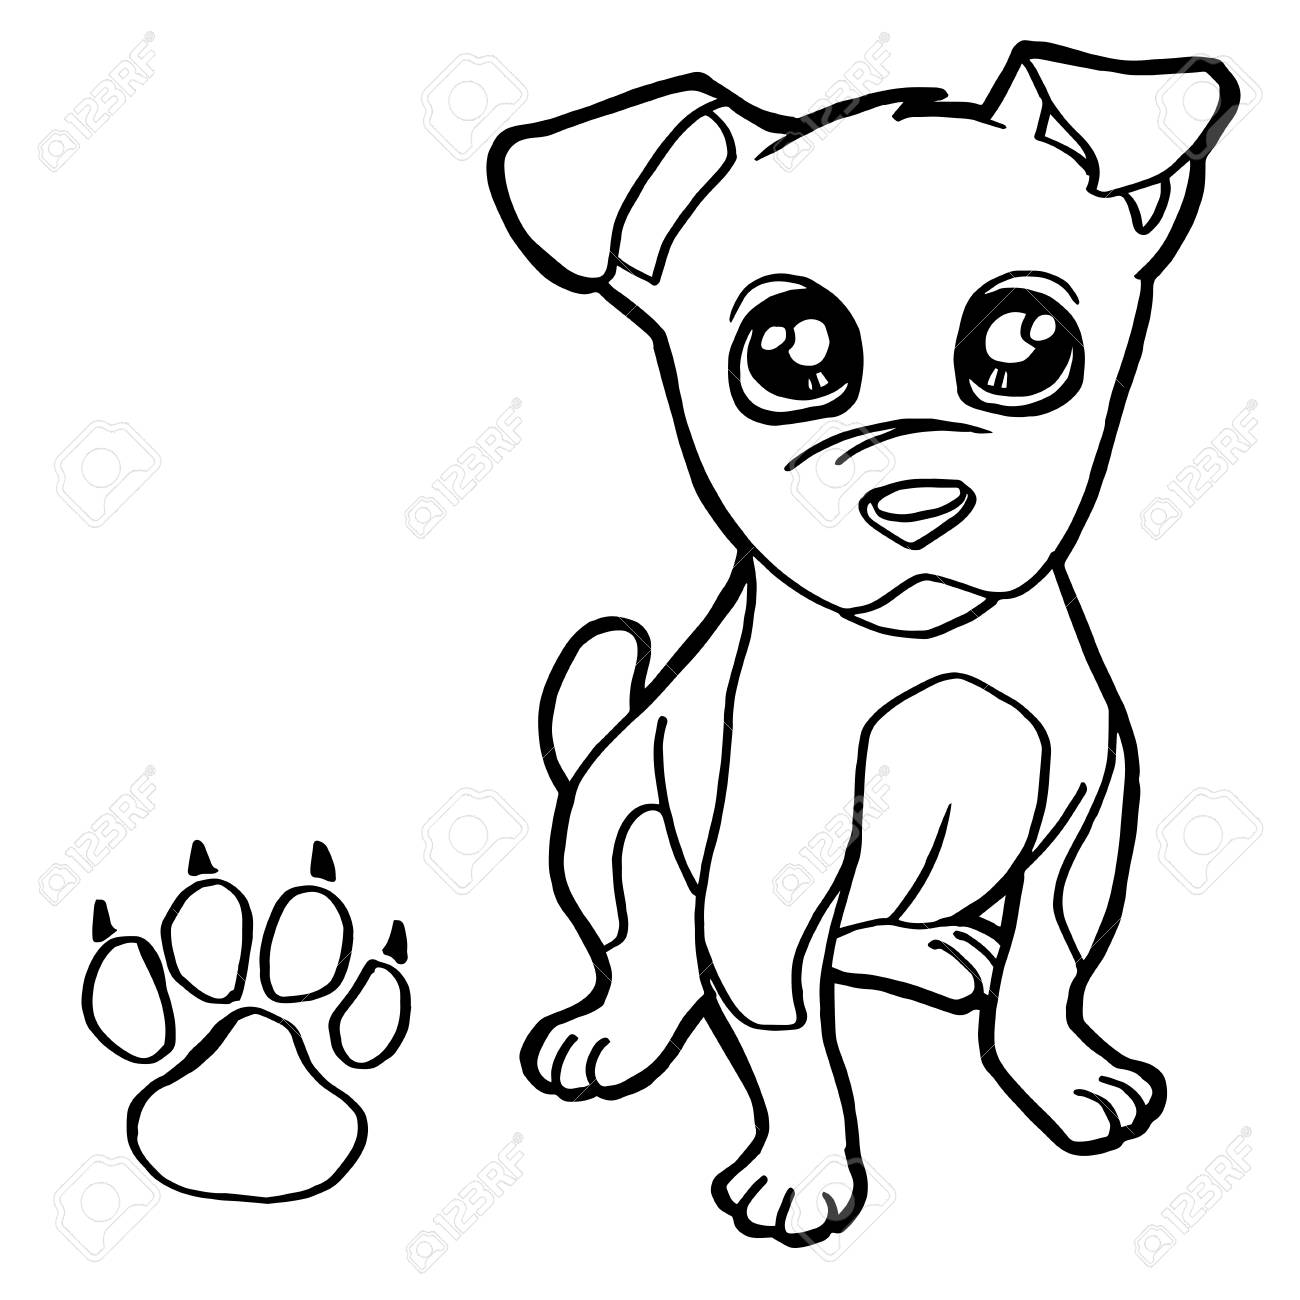 1300x1300 Dog With Paw Print Coloring Page Vector Royalty Free Cliparts